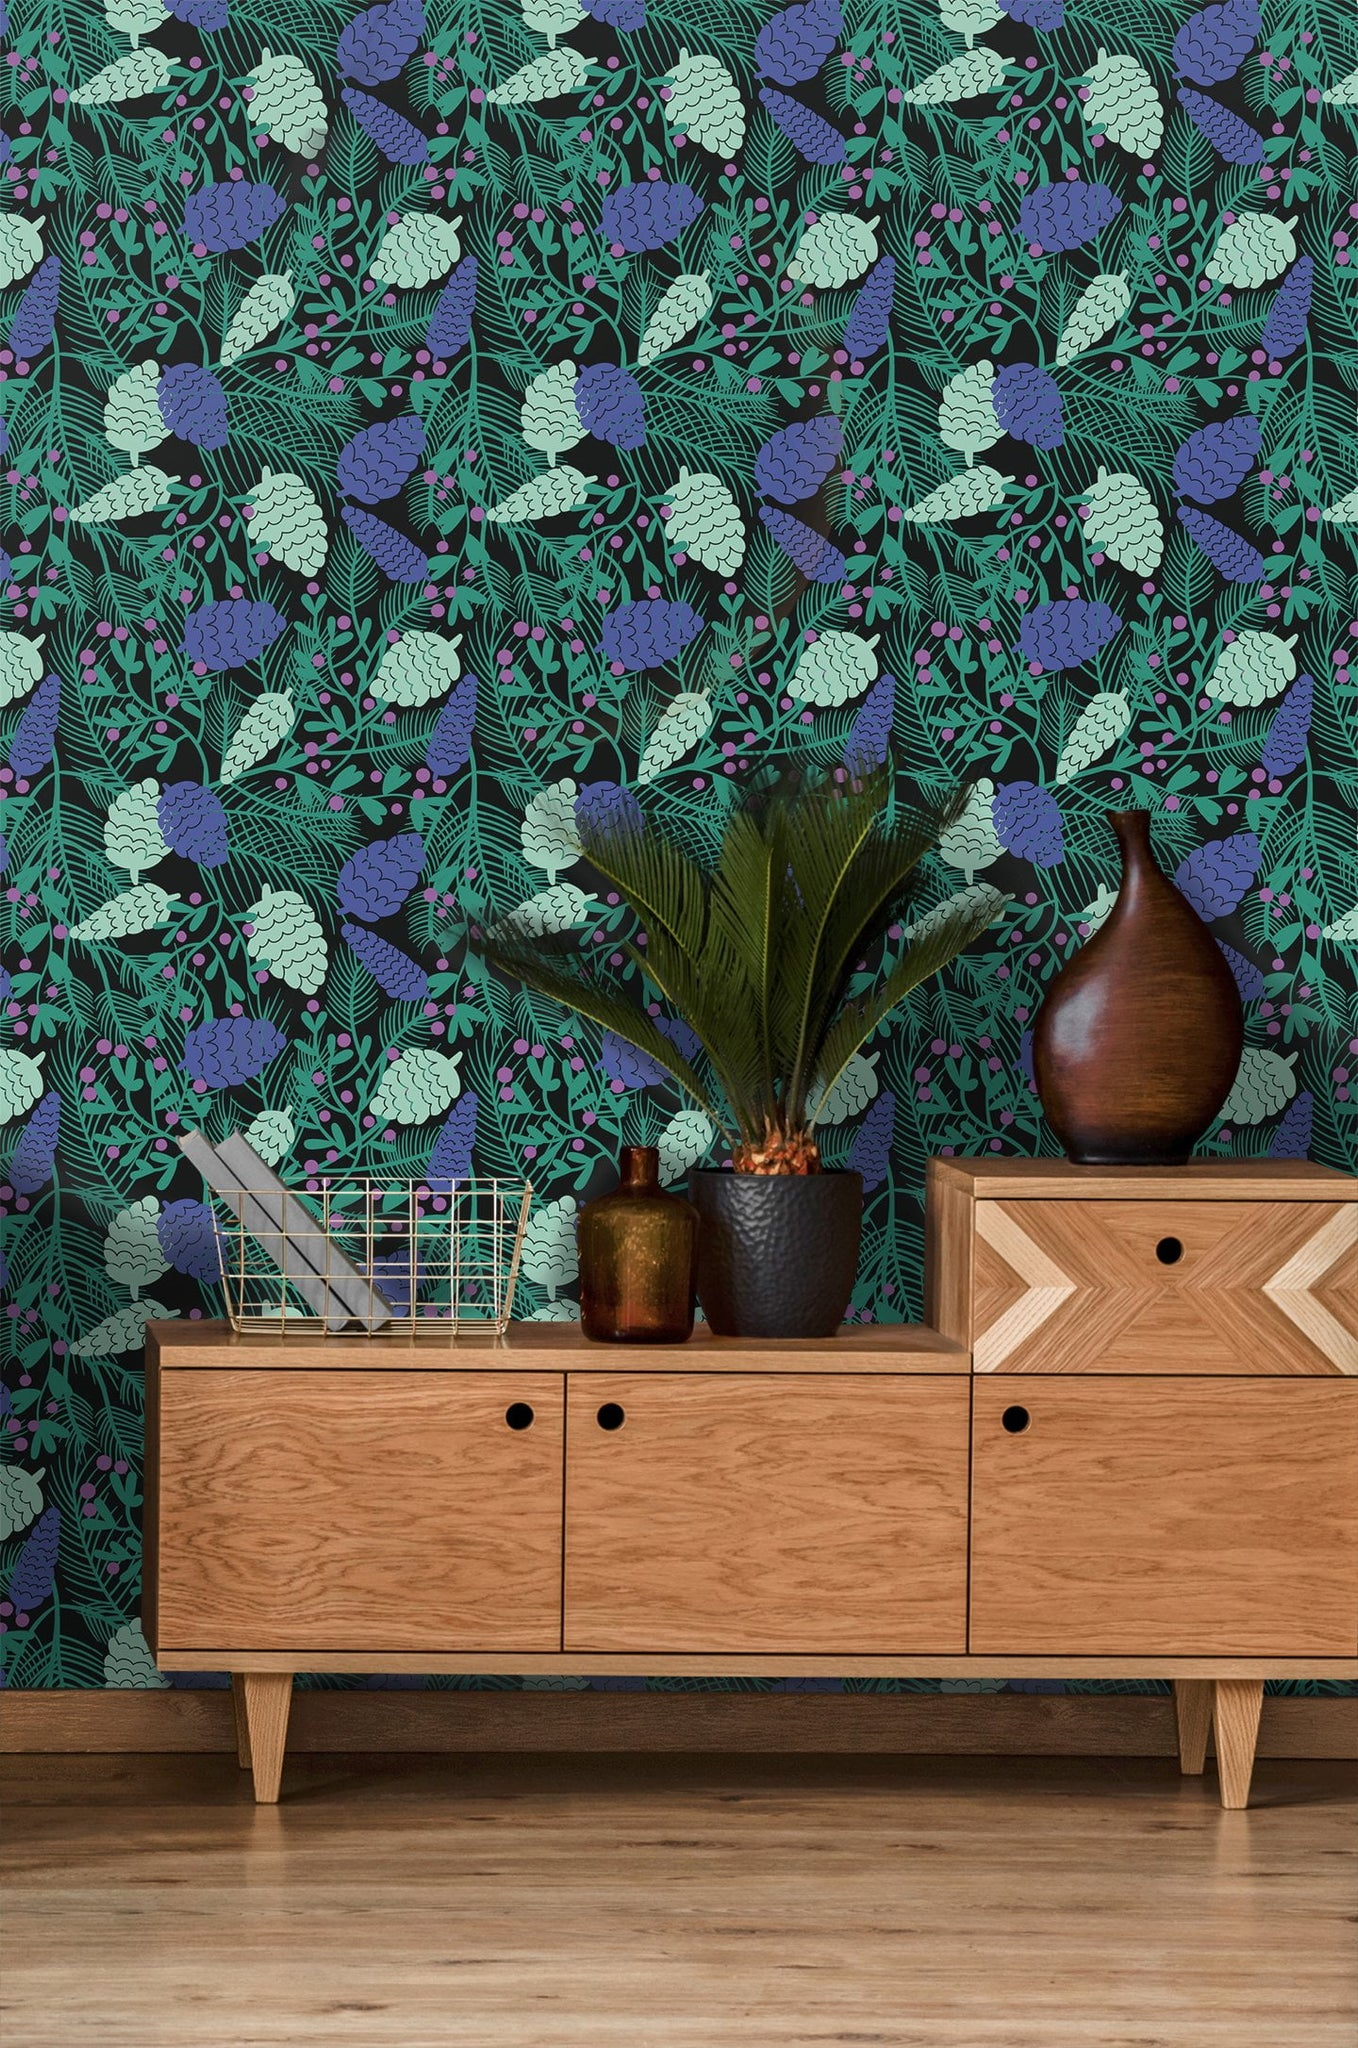 Removable wallpaper of pine cones, needles and berry plants behind credenza